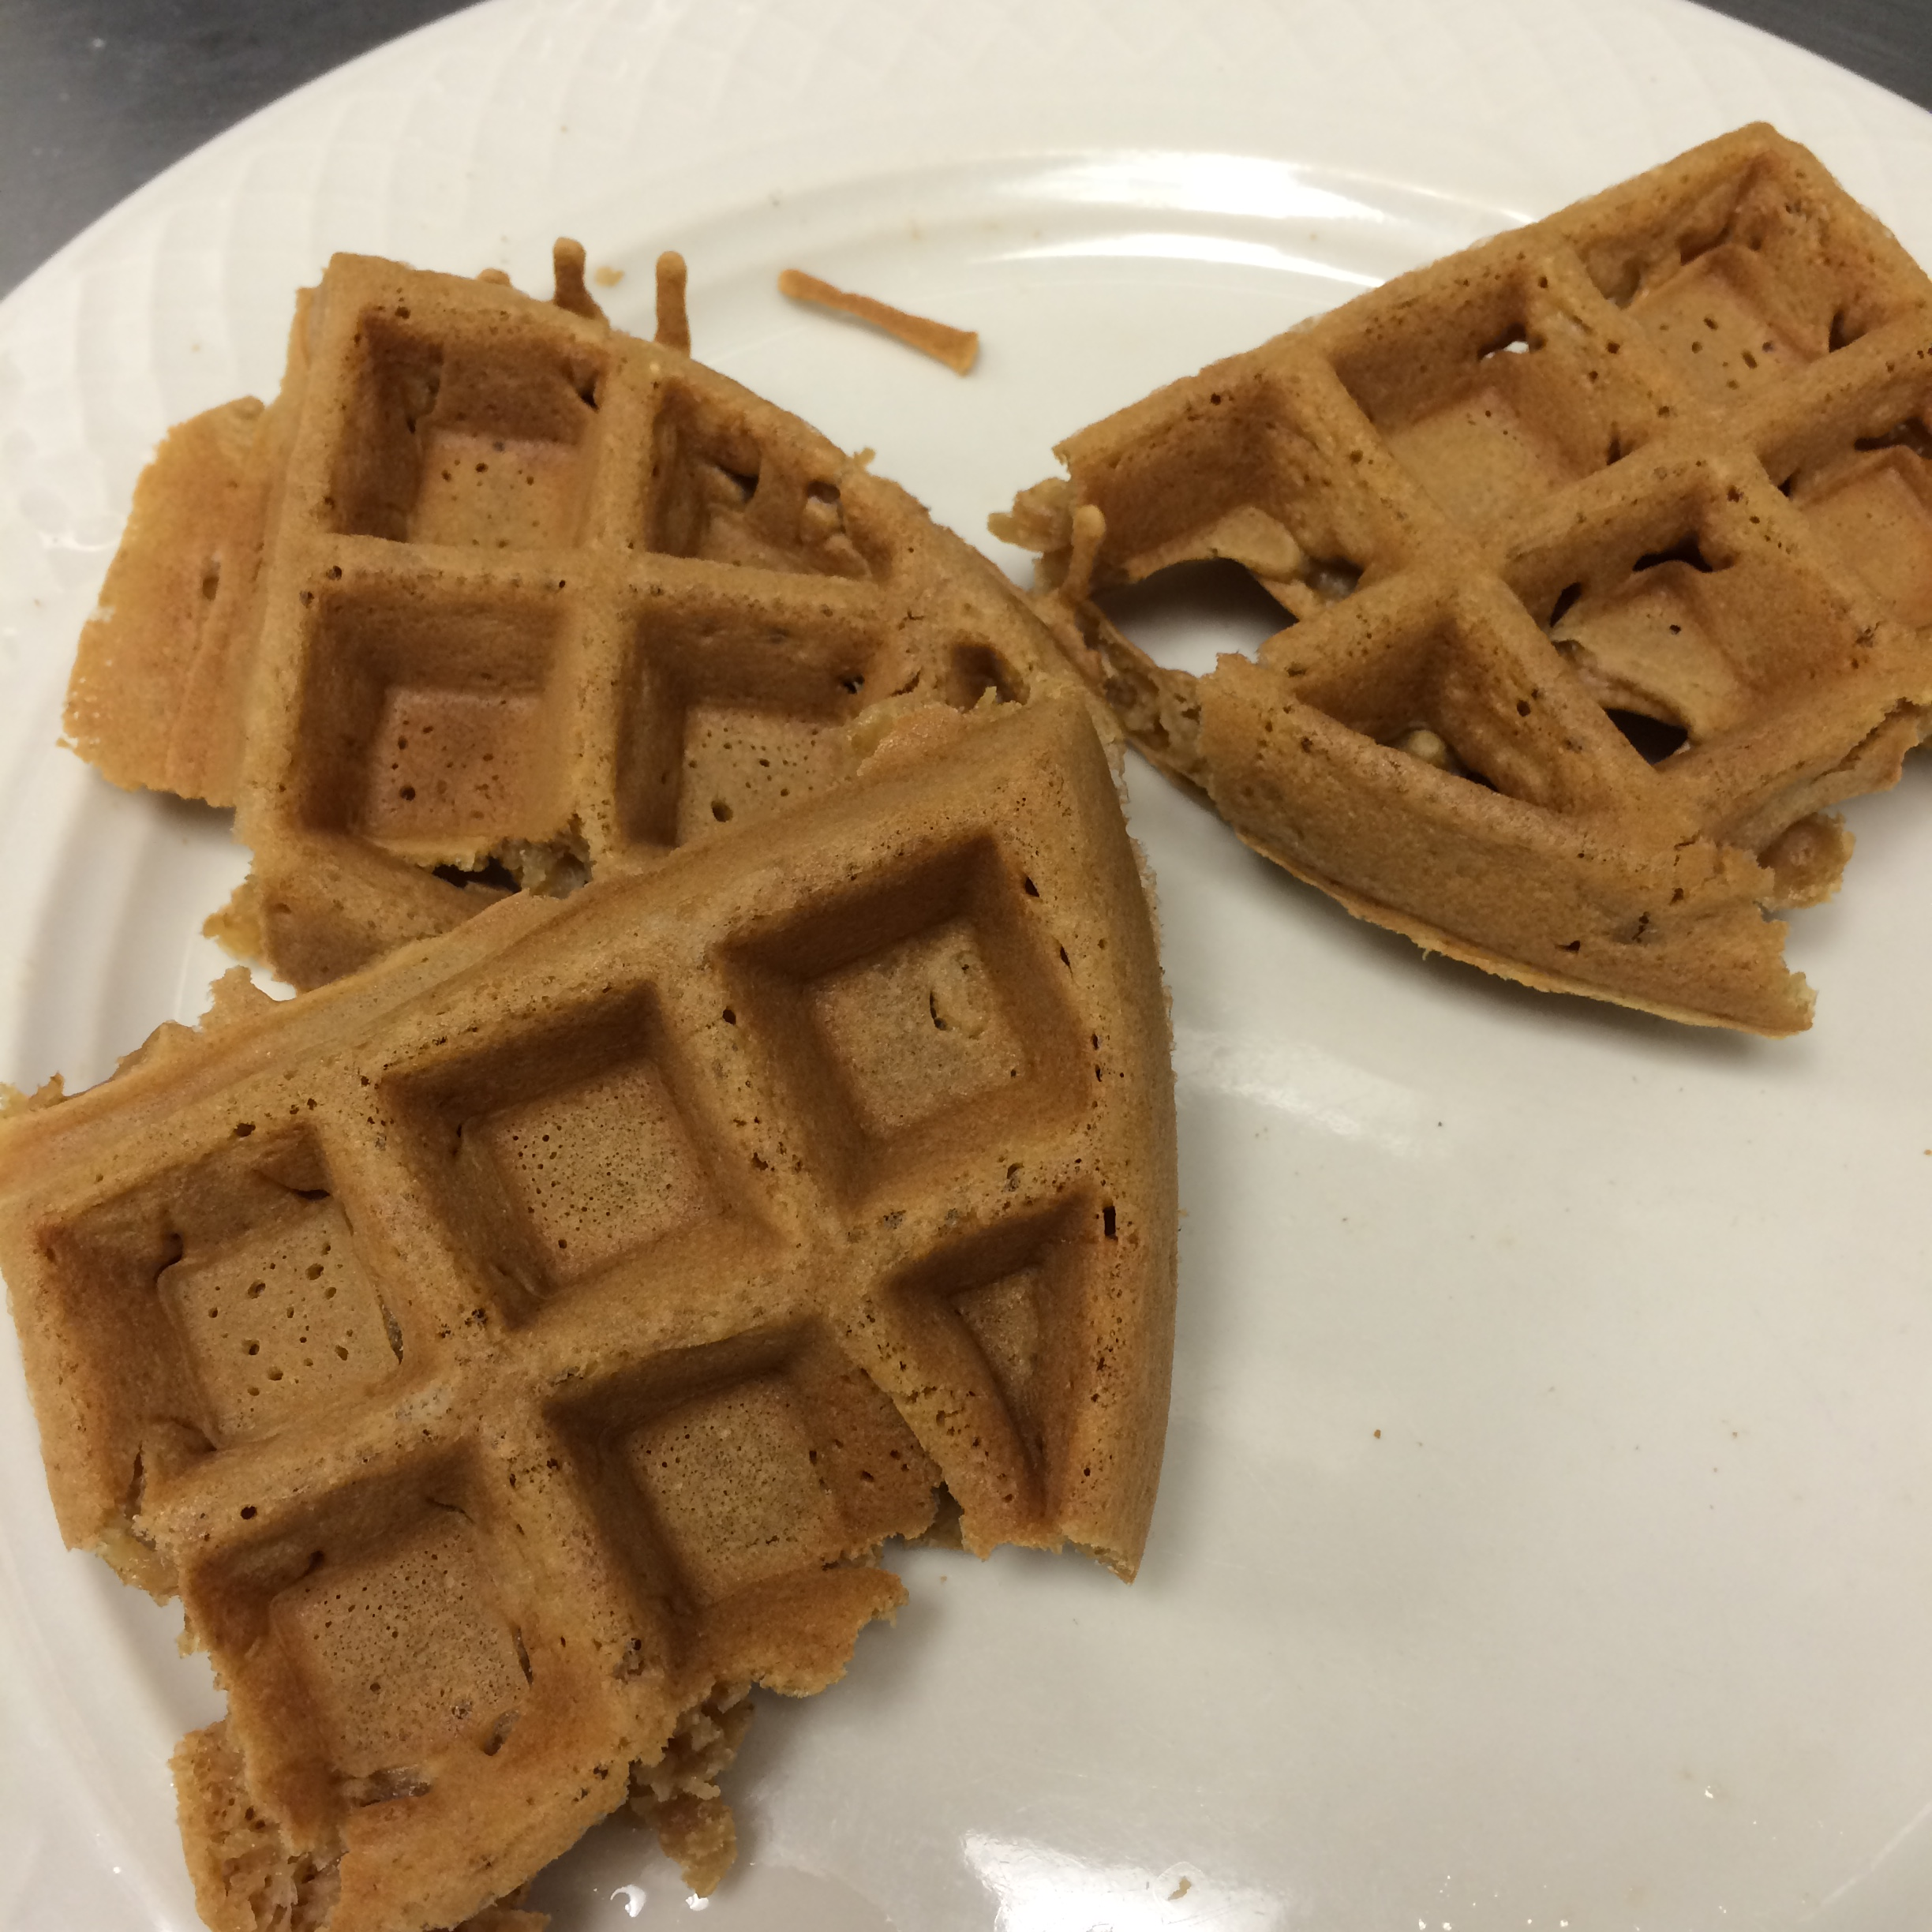 Lessons From a Waffle